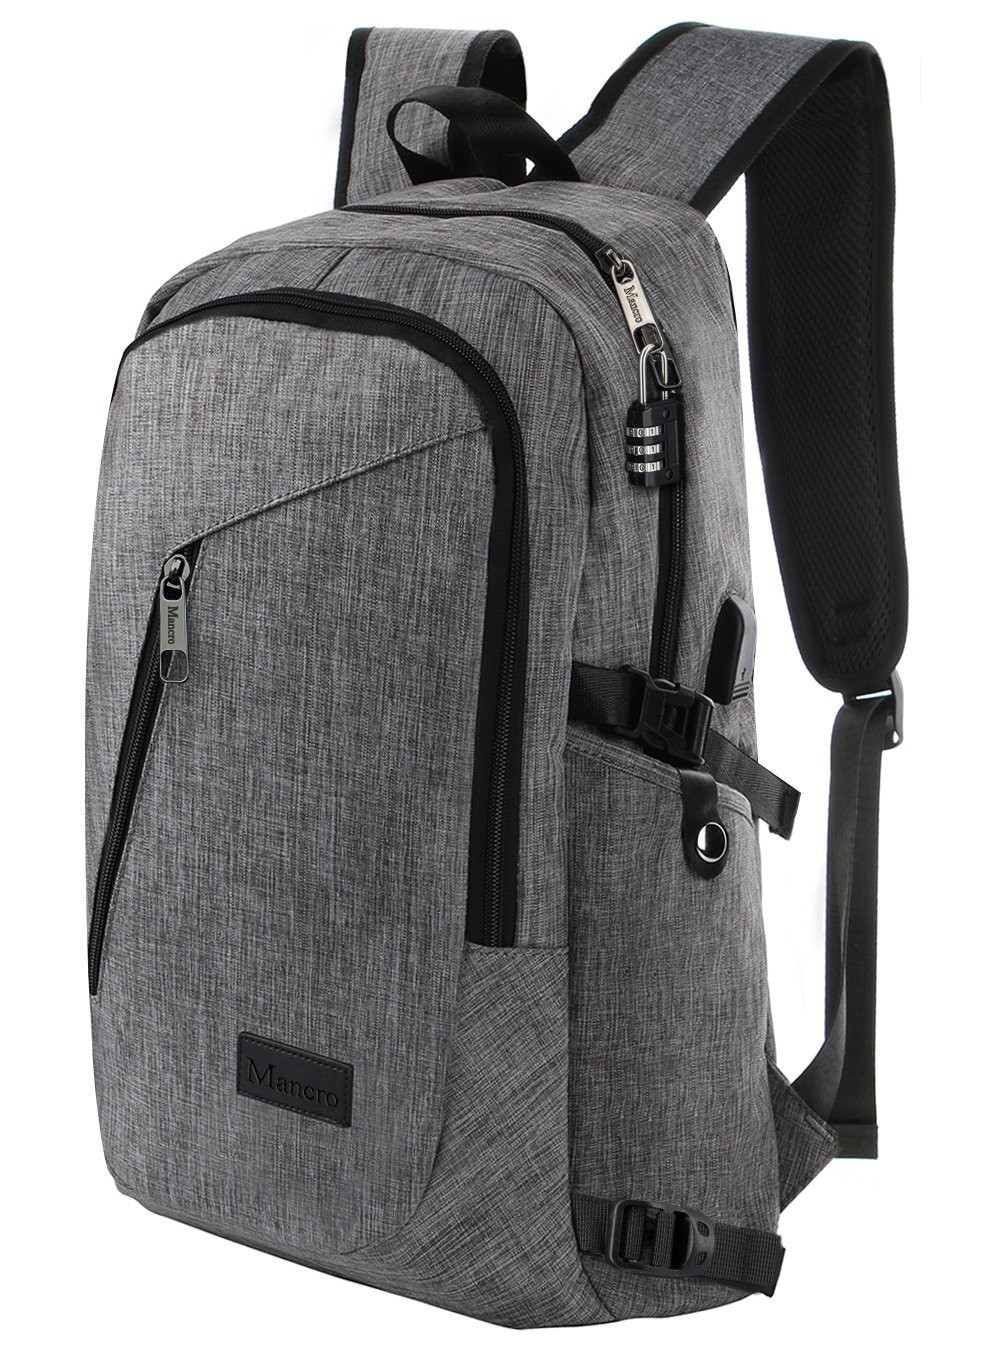 Business Laptop Backpack Slim Anti Theft Computer Bag Water Resistent College School